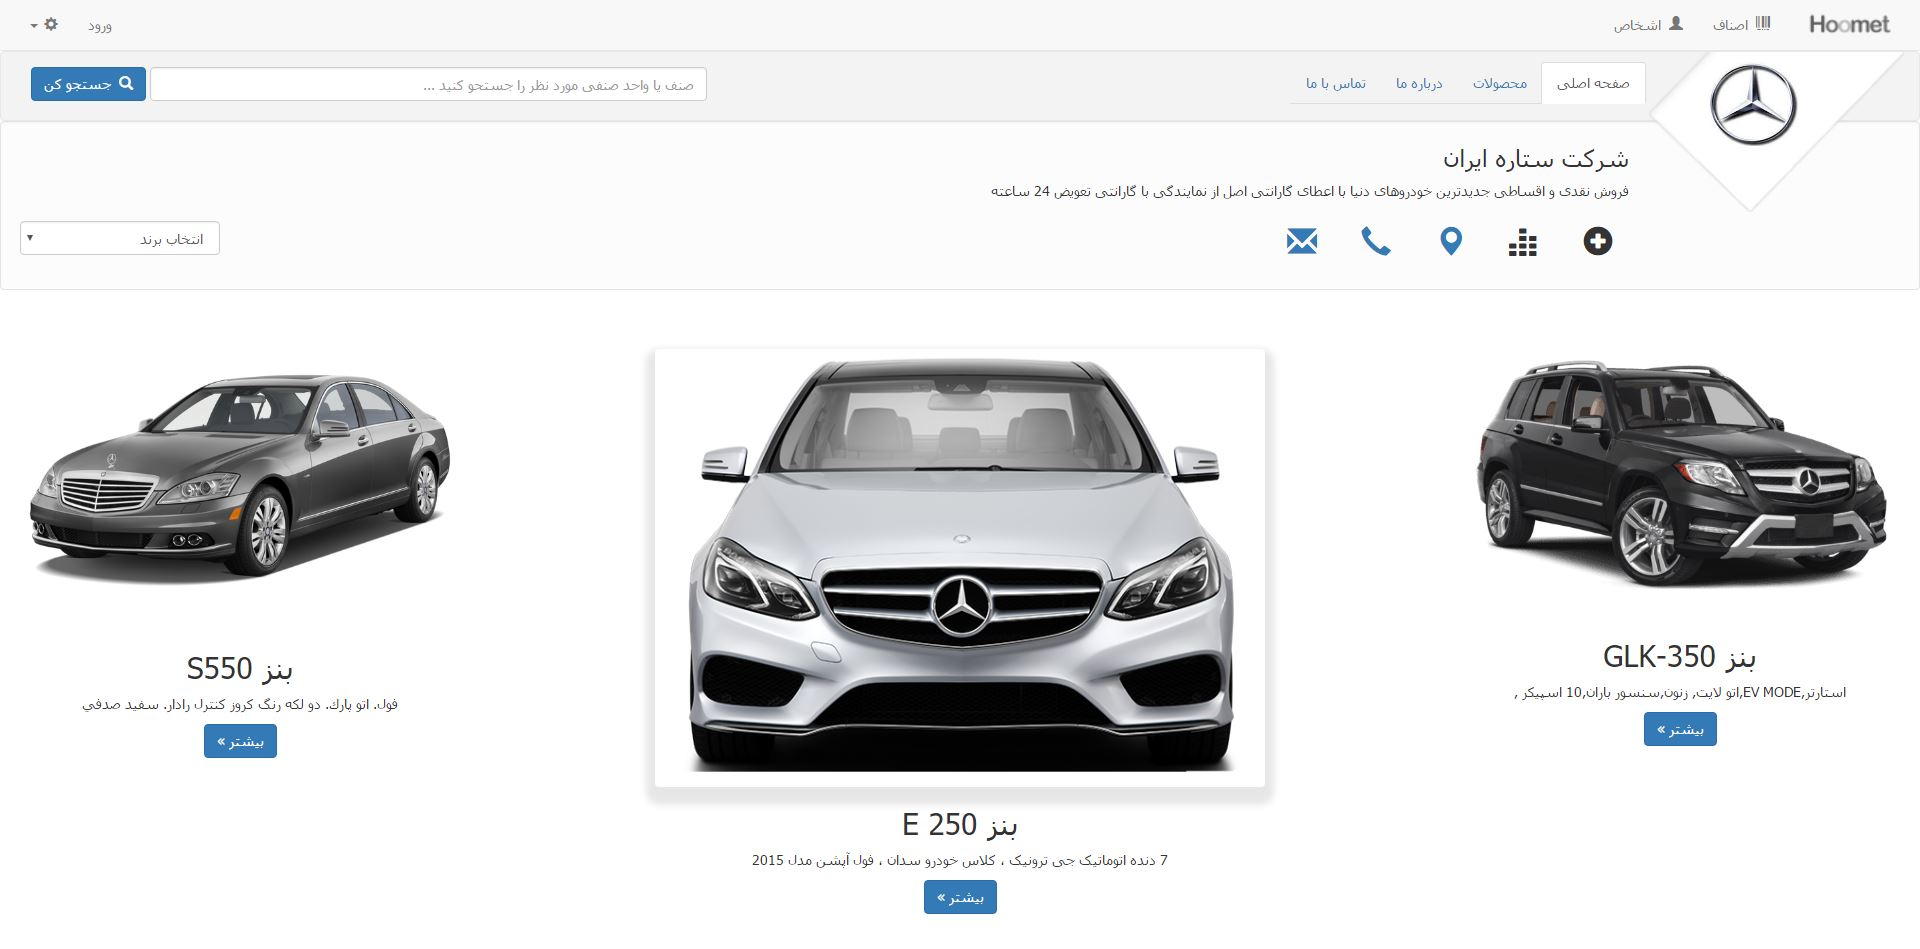 Hoomet Custom Website1(Car Exhibition)